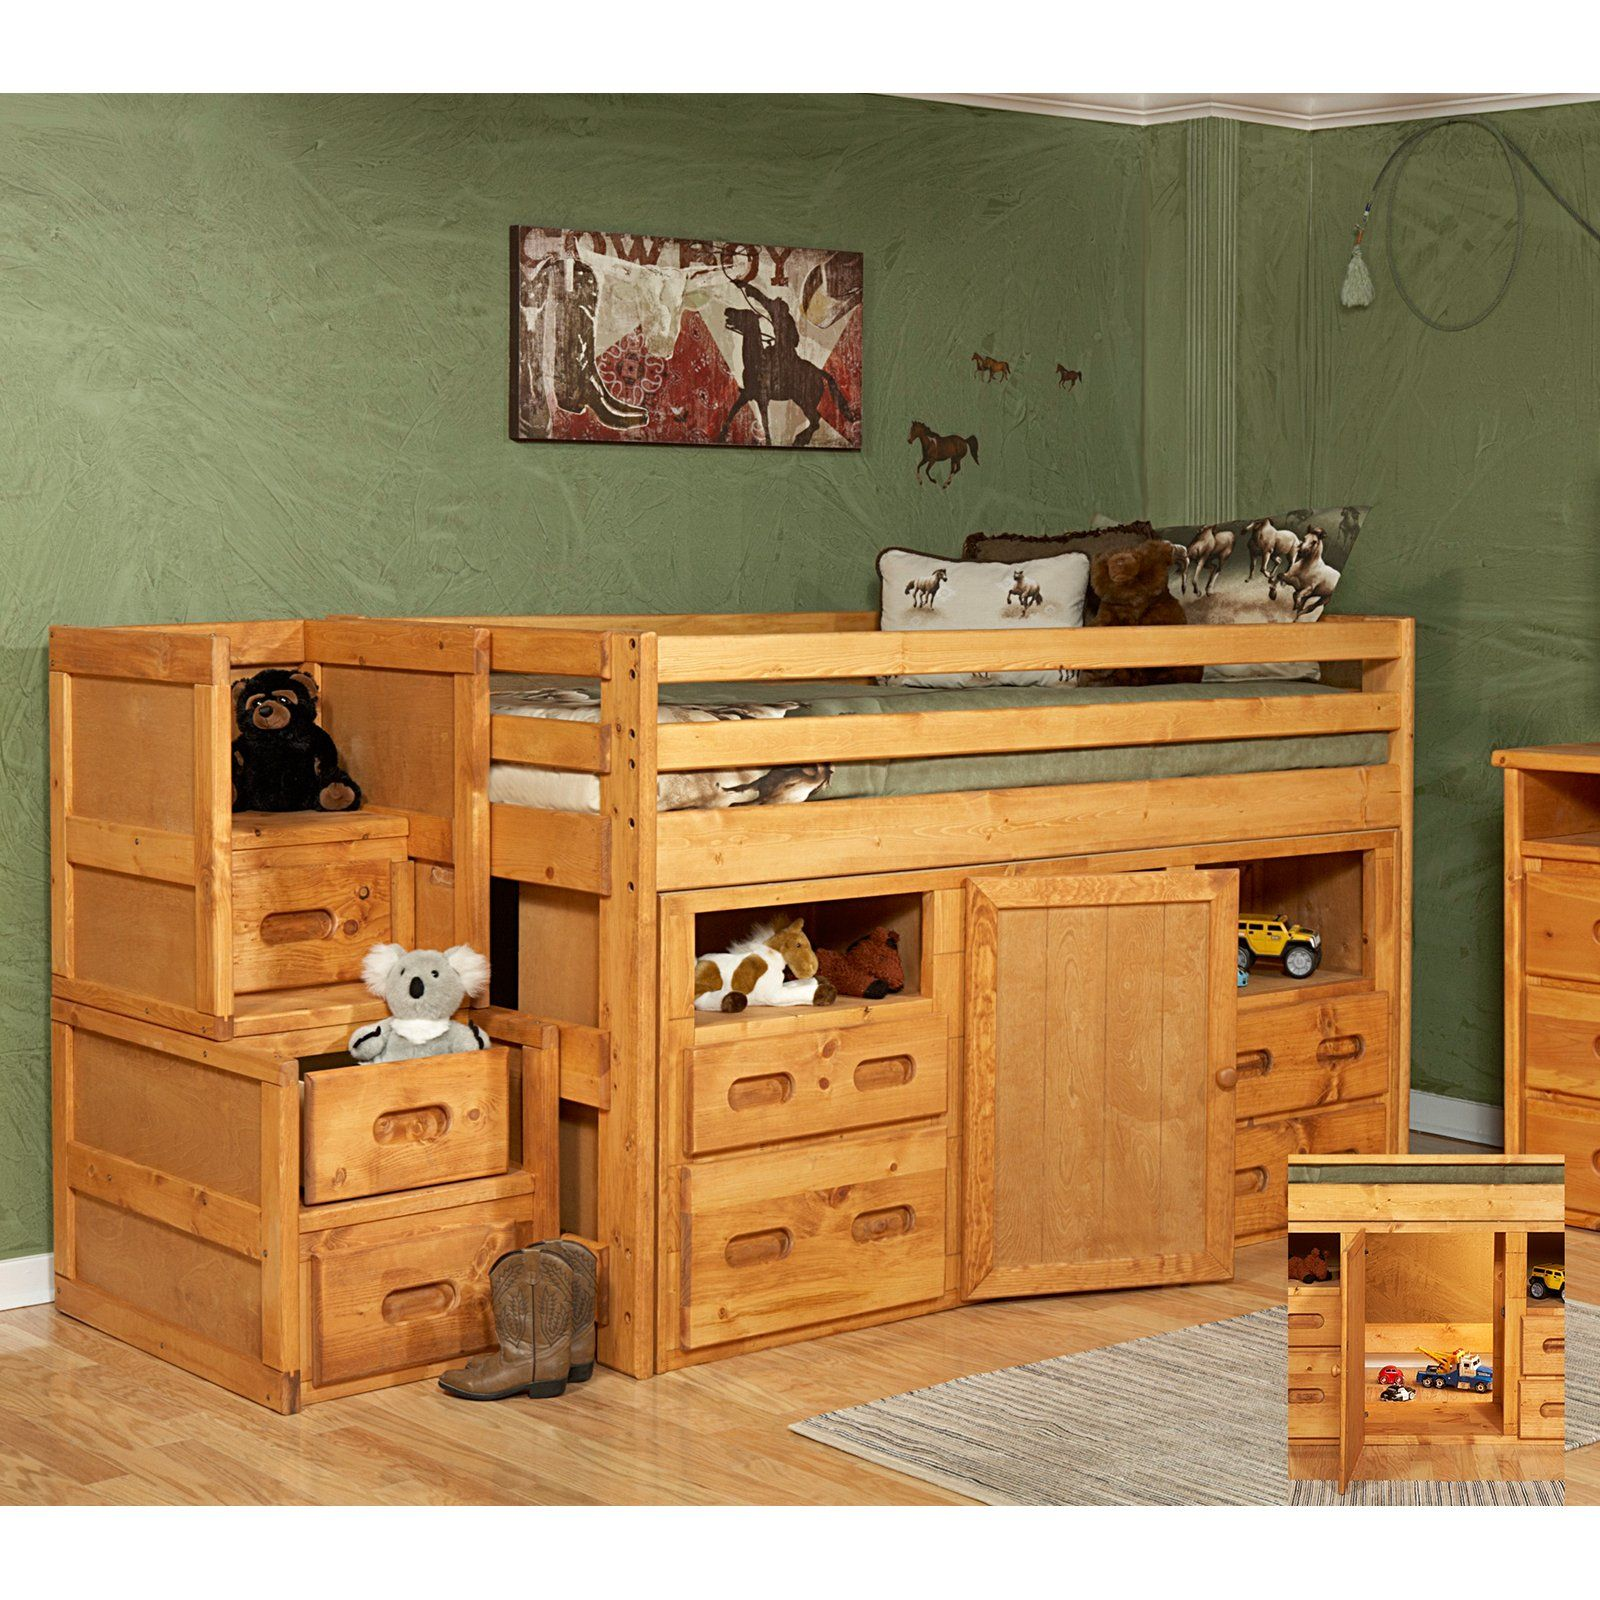 Chelsea Home Twin Junior Loft Bed With Storage And